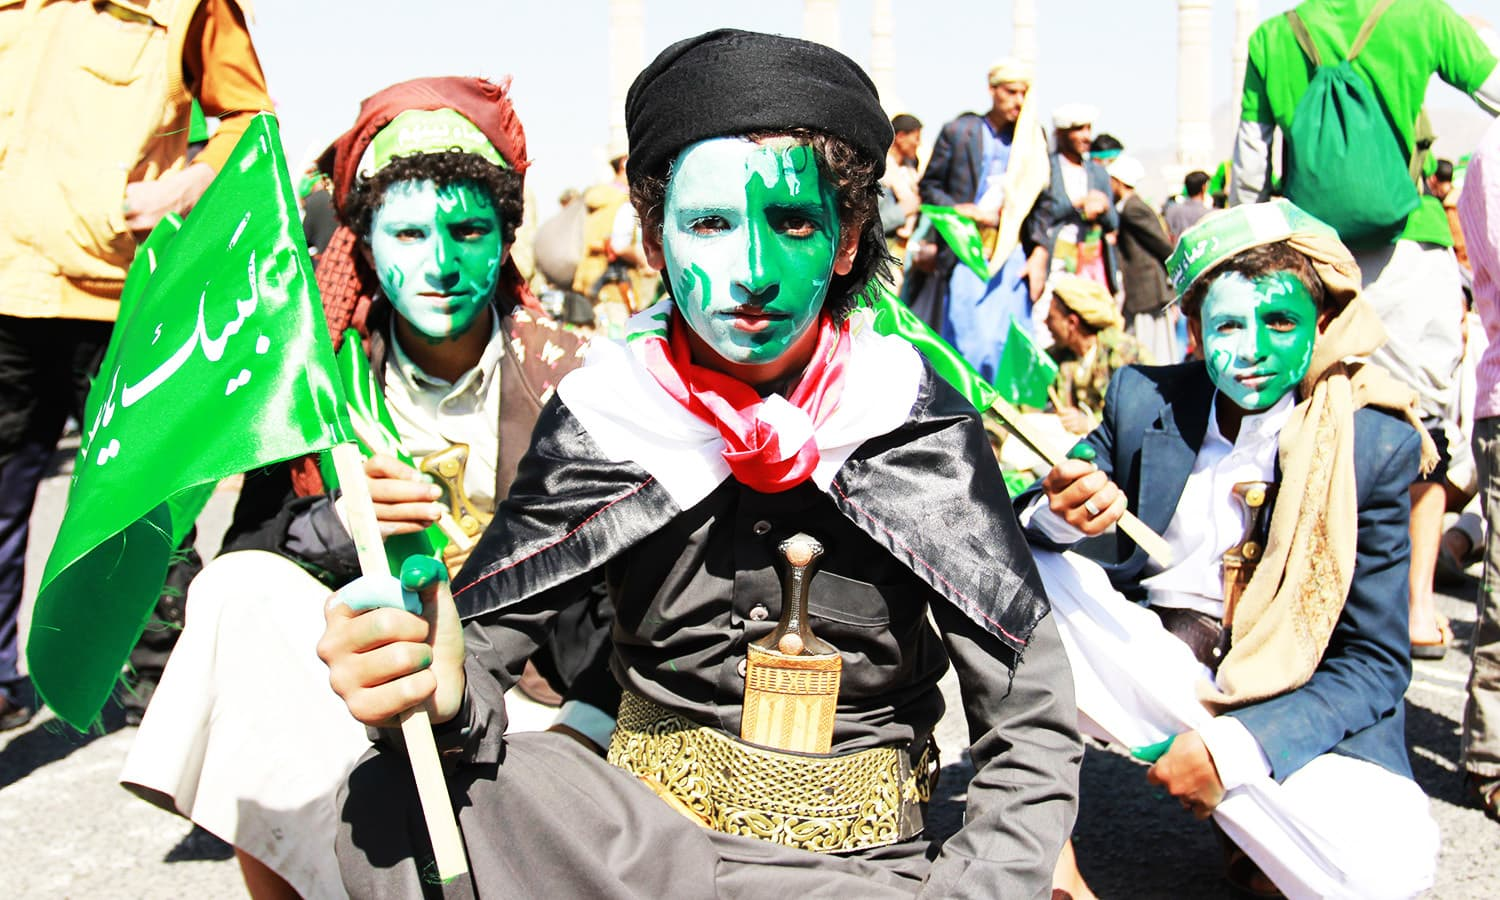 Muslim Yemenis attend a gathering marking the birth anniversary of Prophet Muhammad (PBUH).—AFP